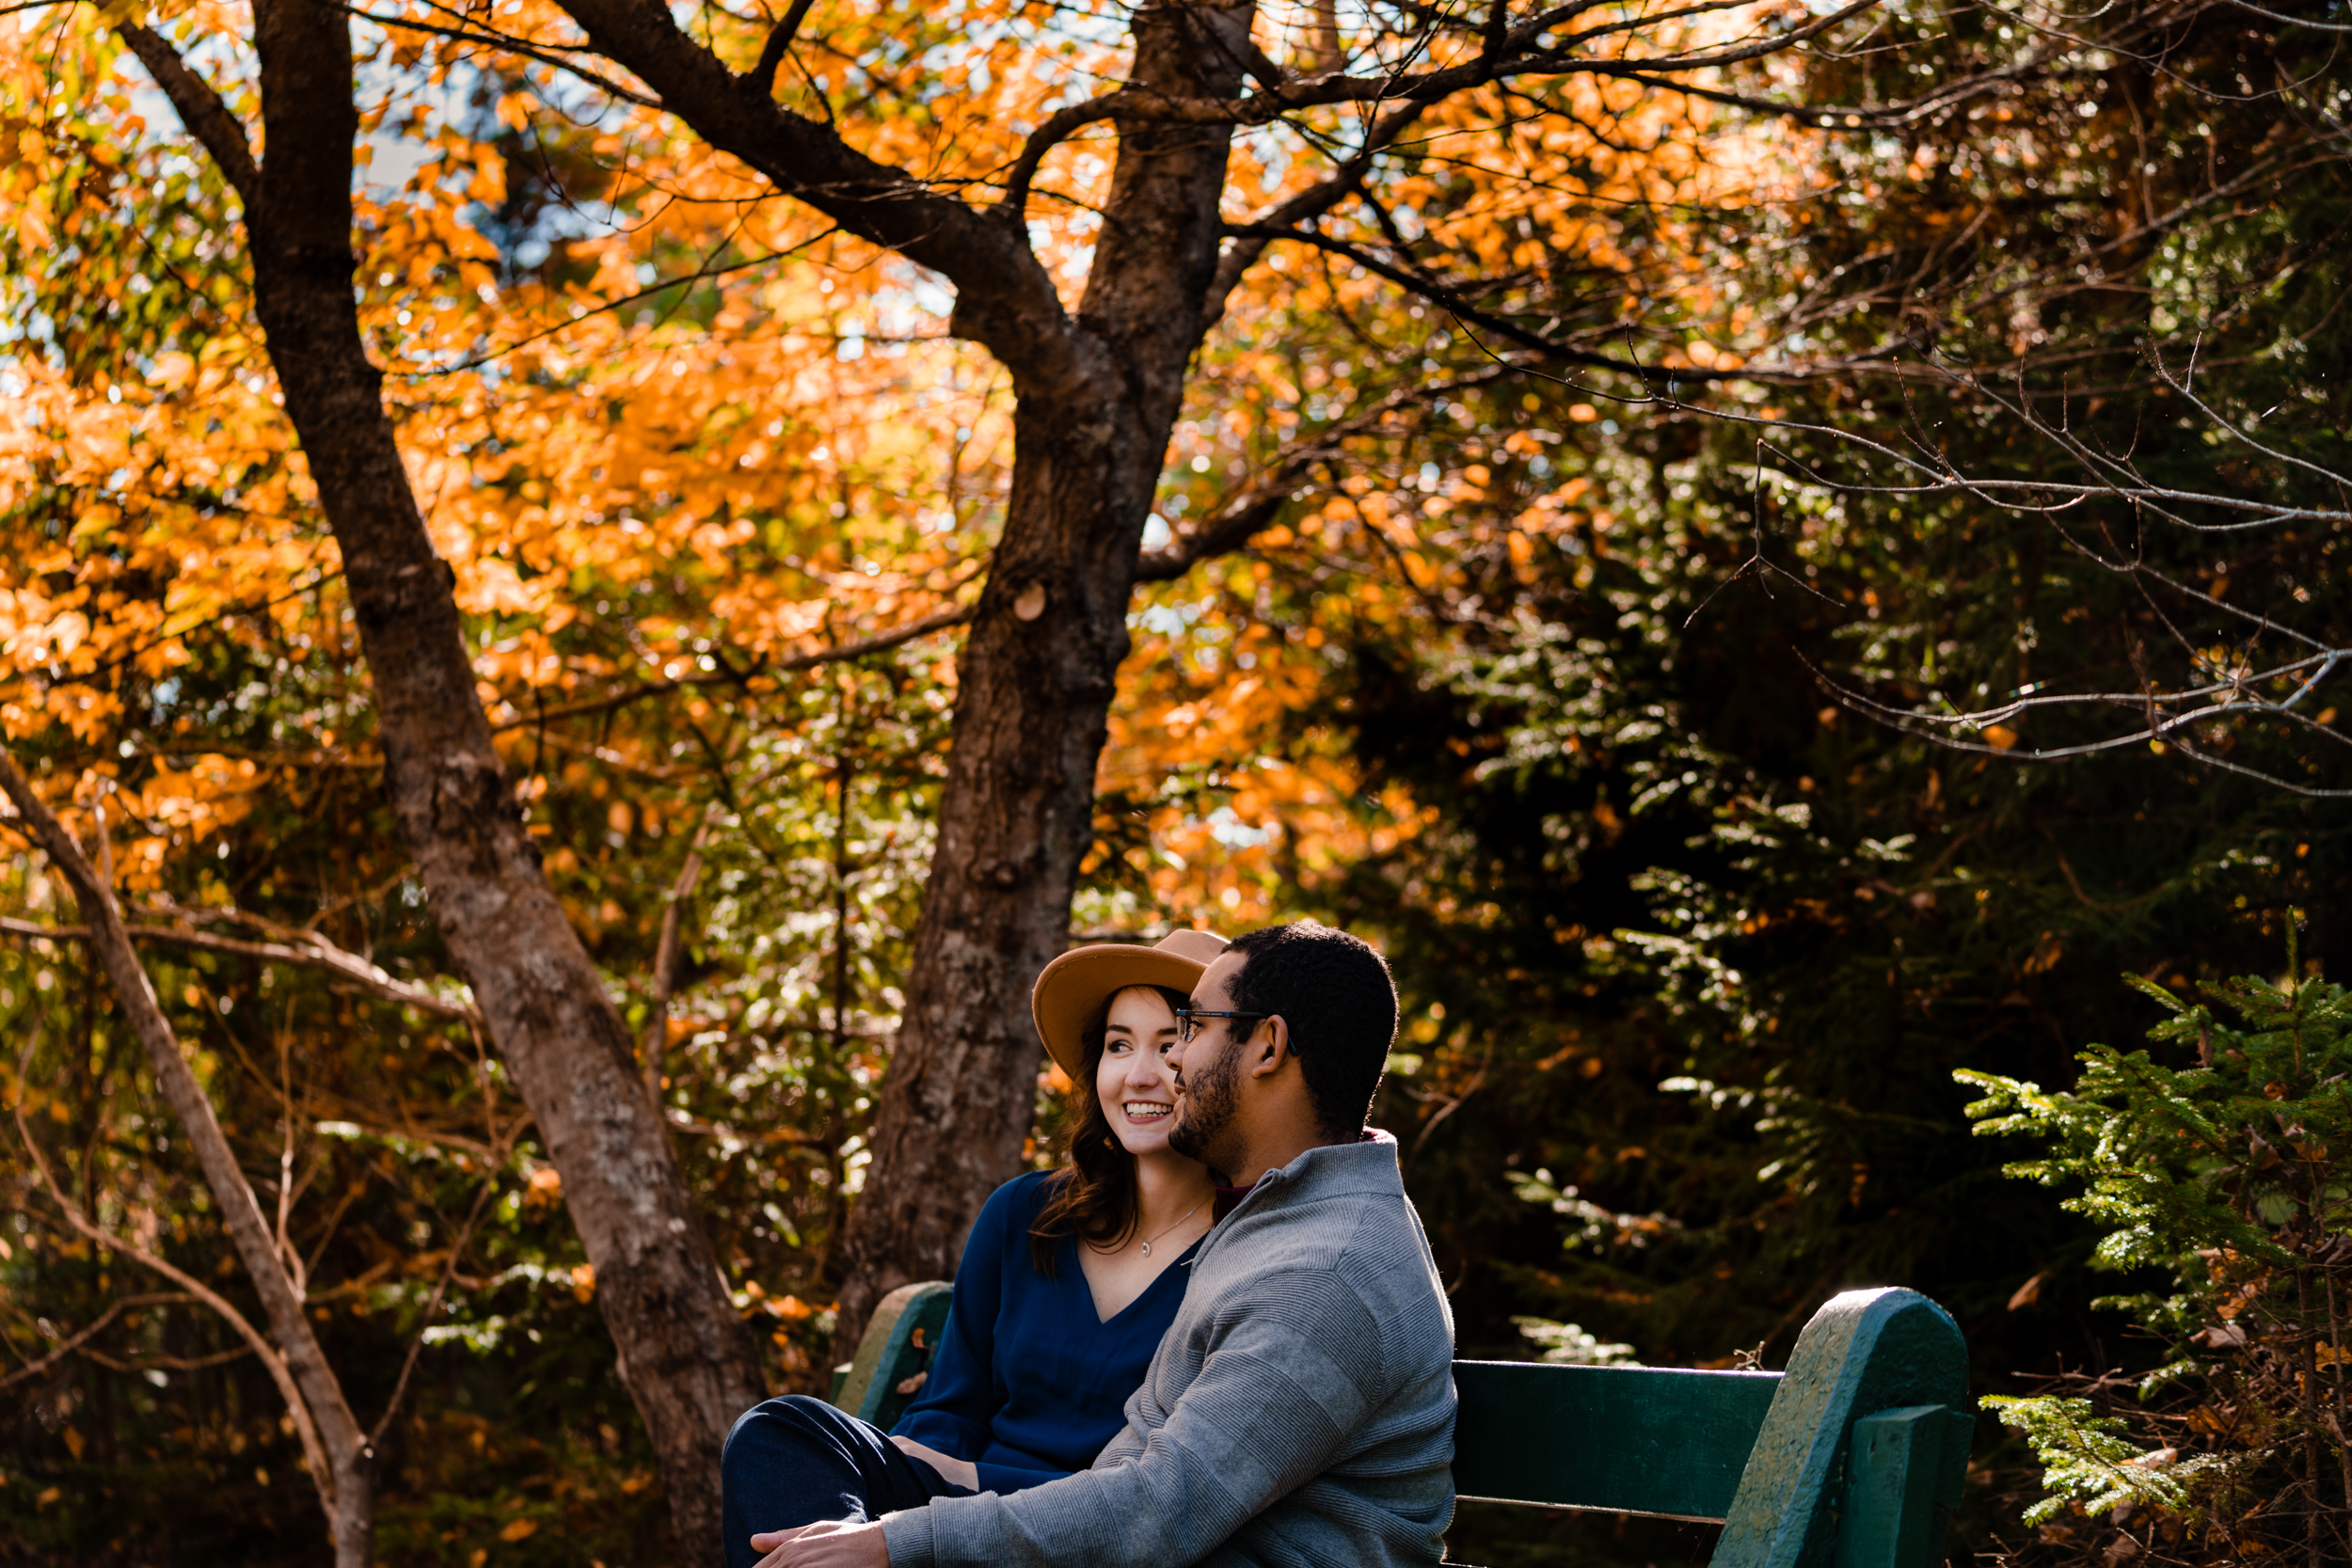 Wedding-halifax-engagement-nova-scotia-ottawa-ontario-pointpleasantpark-Fall-Autumn (18 of 53).jpg